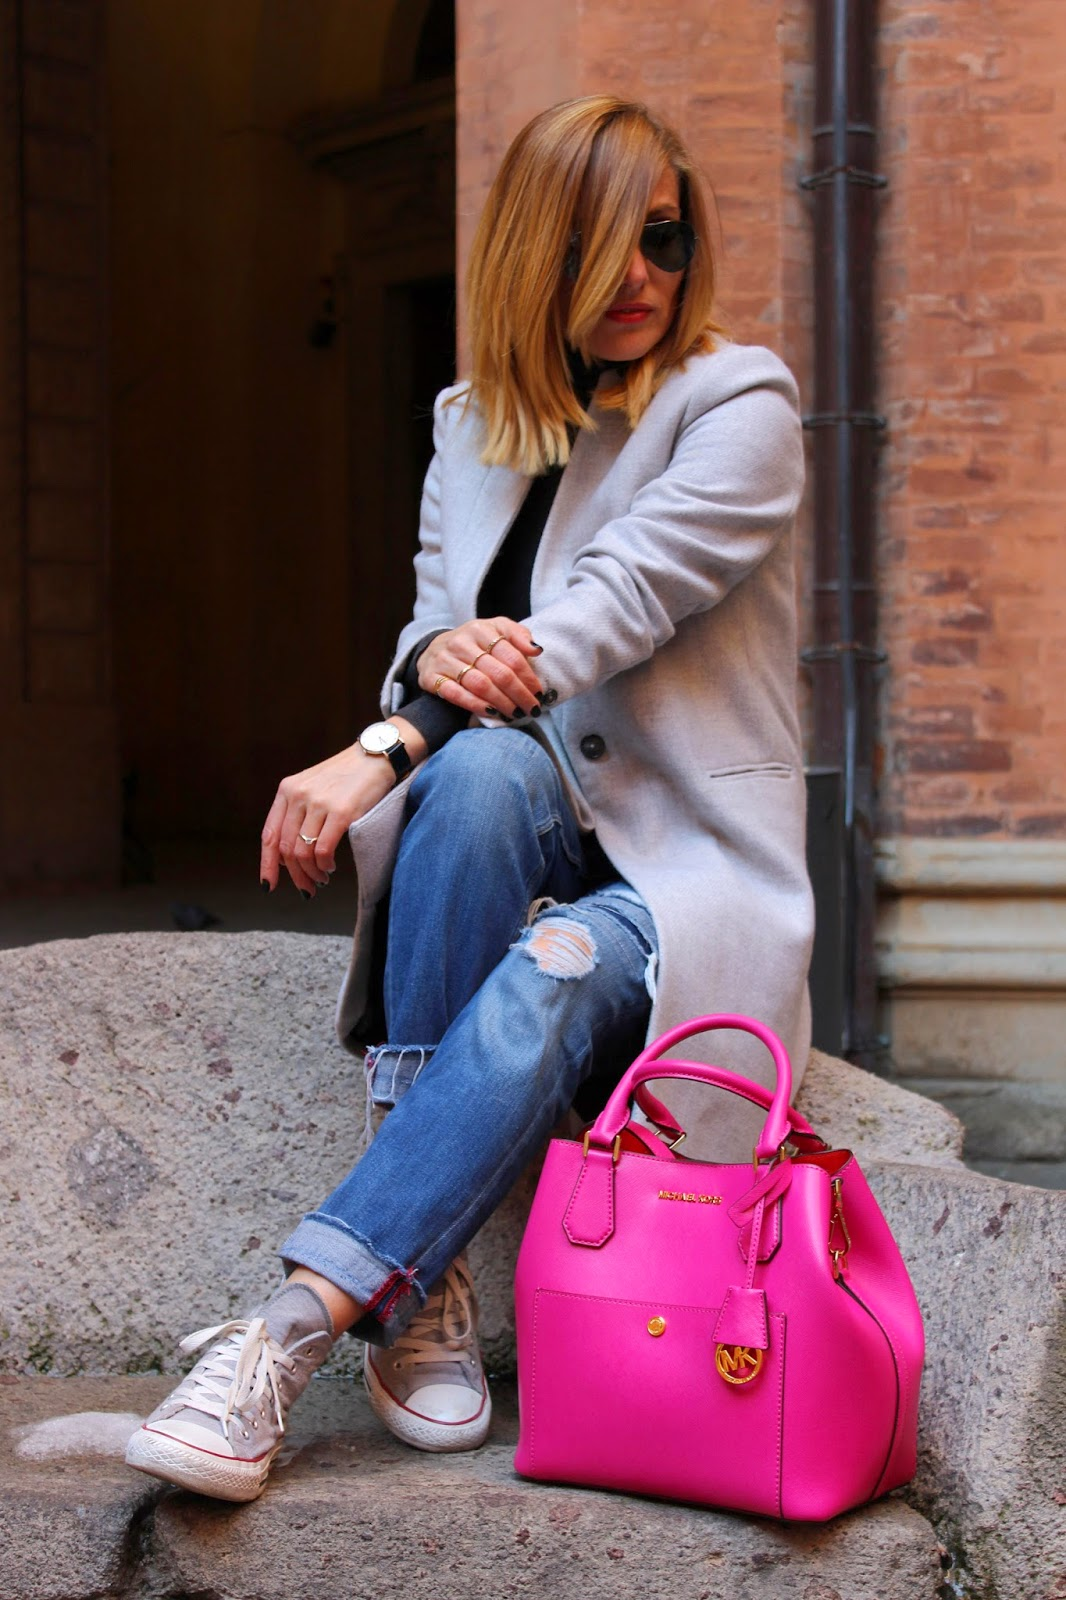 Eniwhere Fashion - Bologna - Maxi grey coat - MK Bag- Daniel Wellington Watches